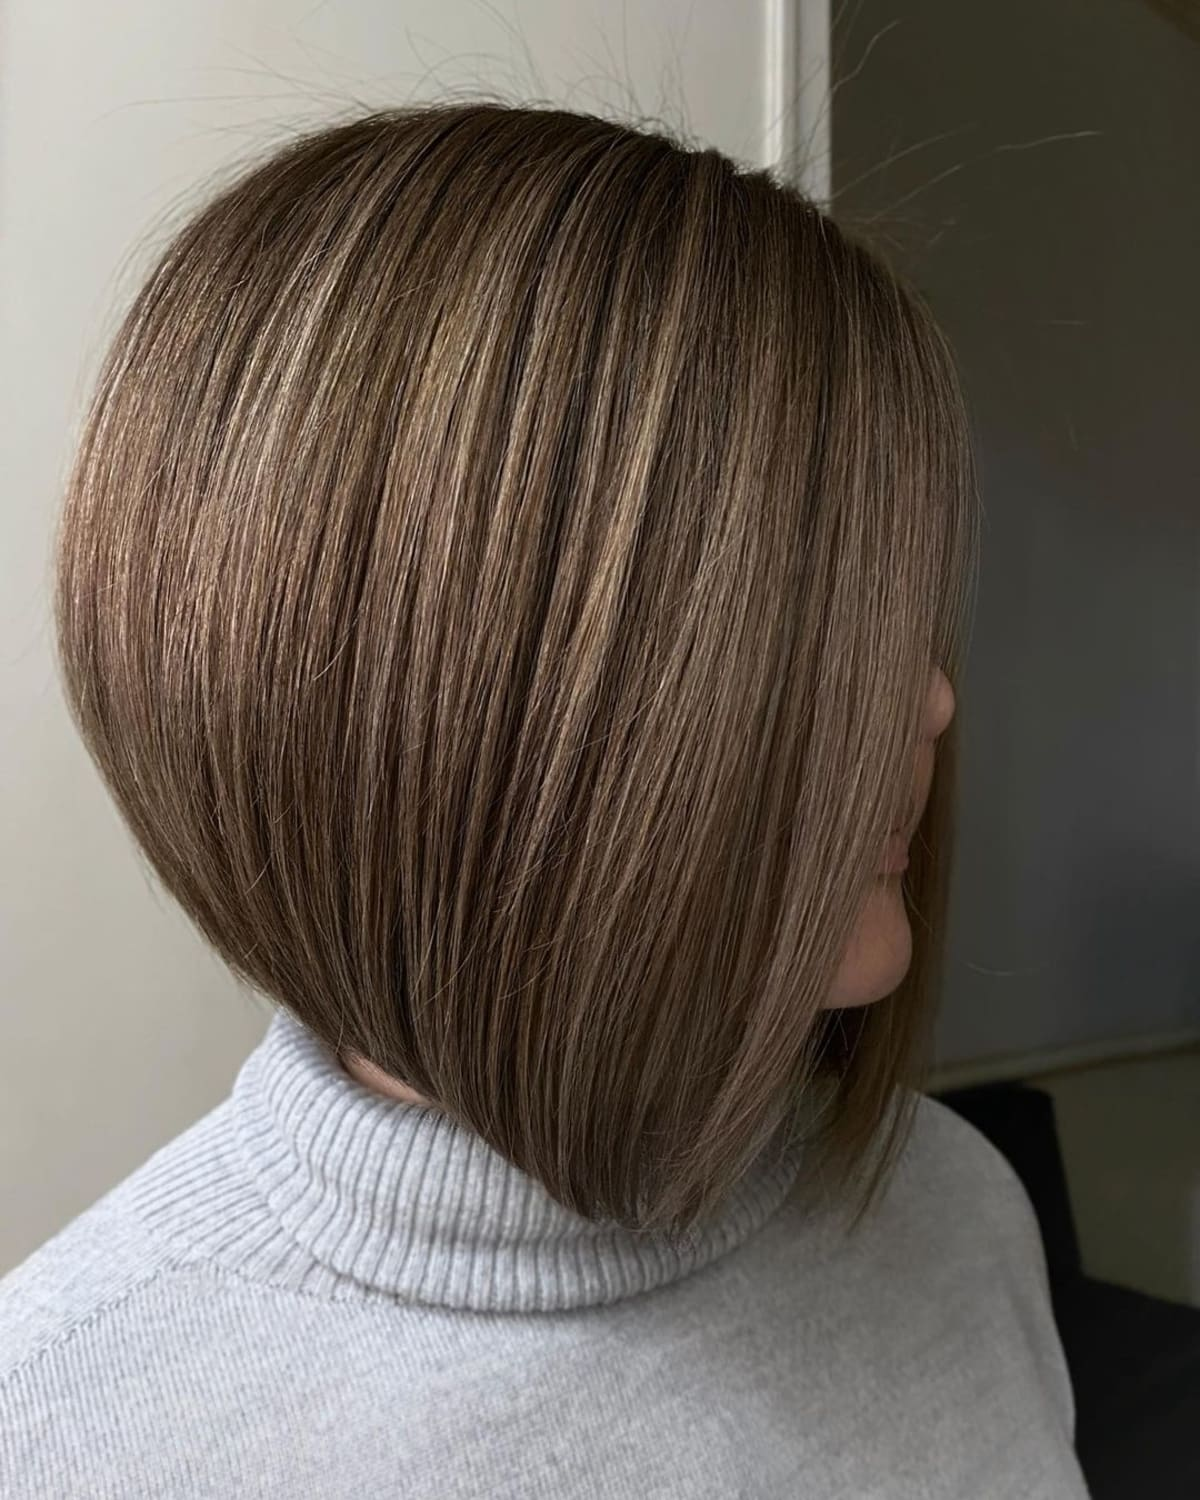 39 Inverted Bob Haircuts Trending Right Now